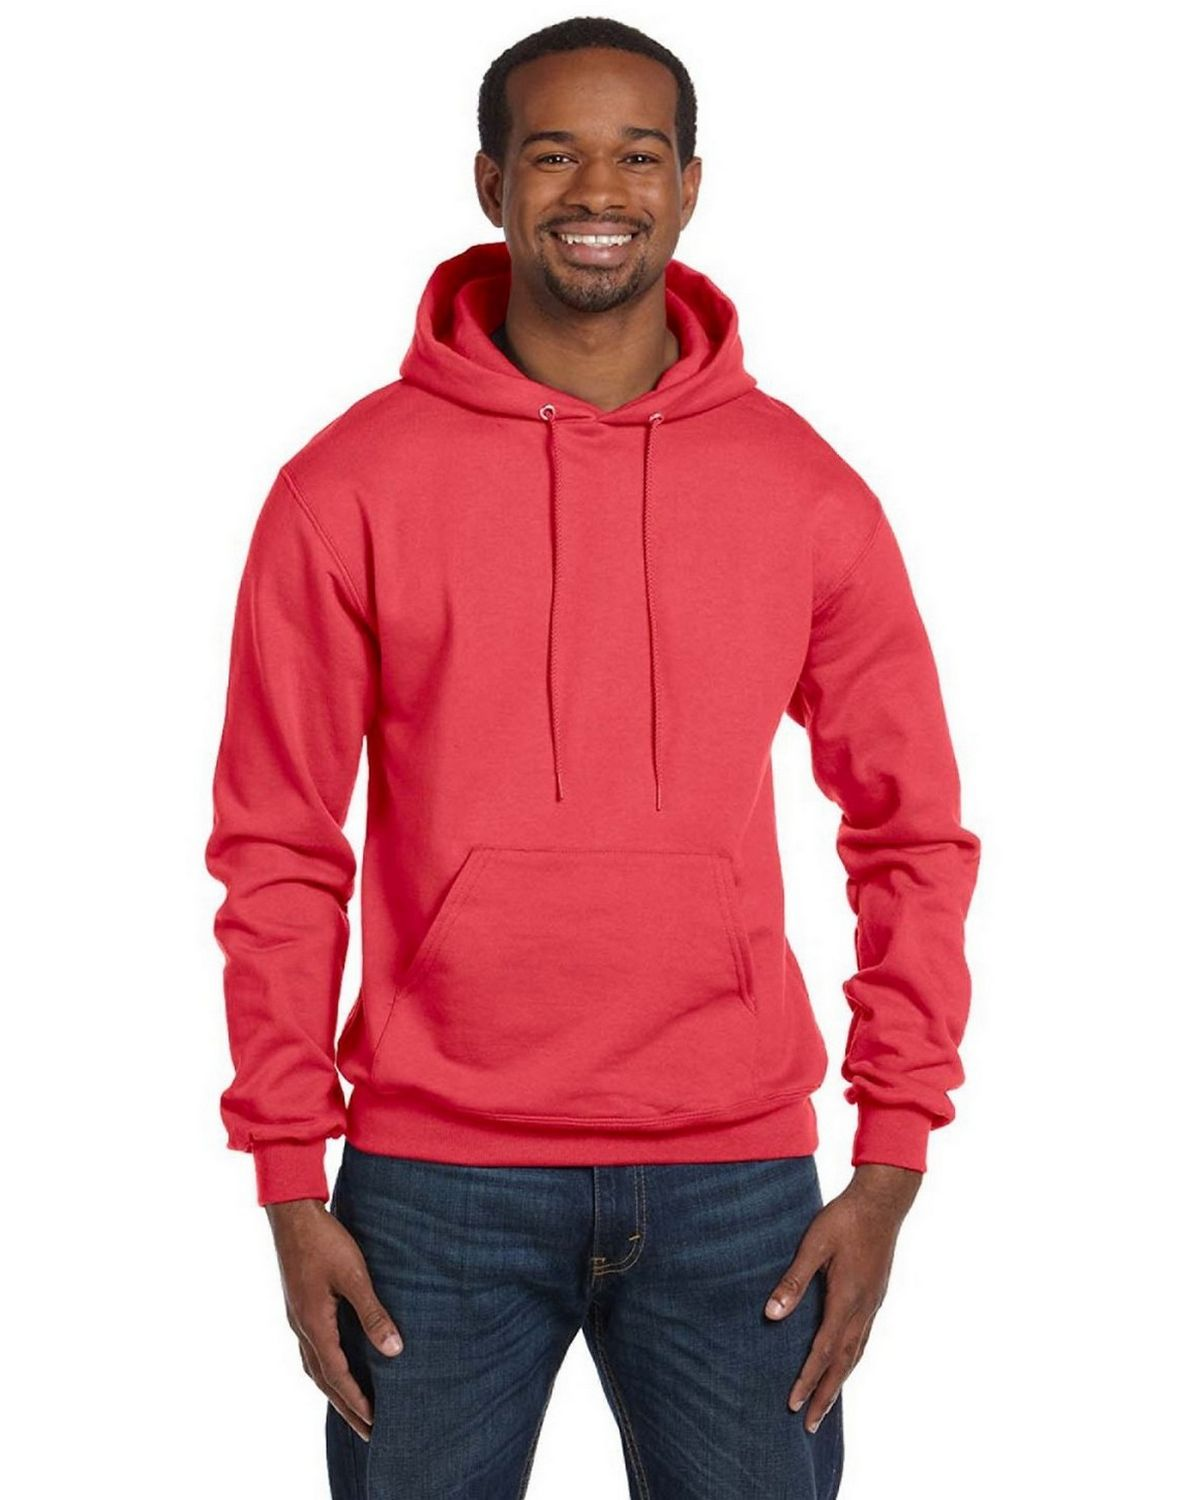 Champion S700 EcoSmart Pullover Hood - Scarlet - L S700